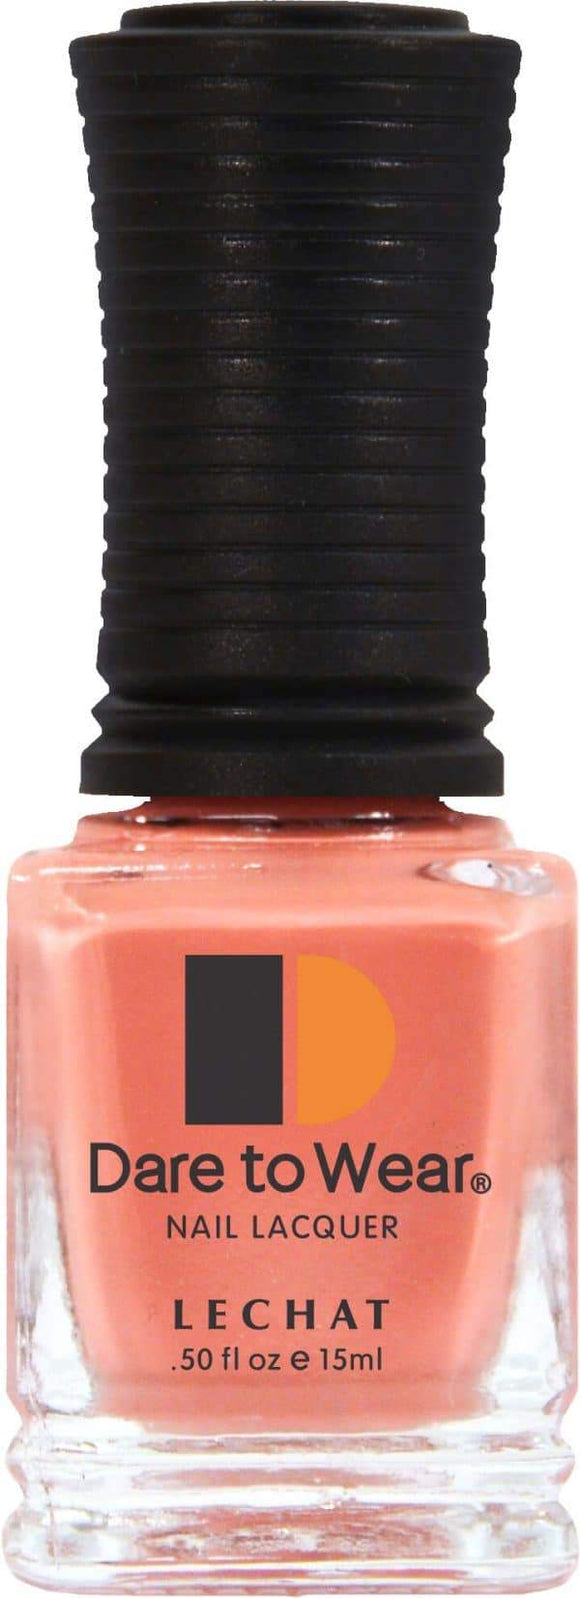 Lechat Nail Lacquers DW171 Blushing Bloom